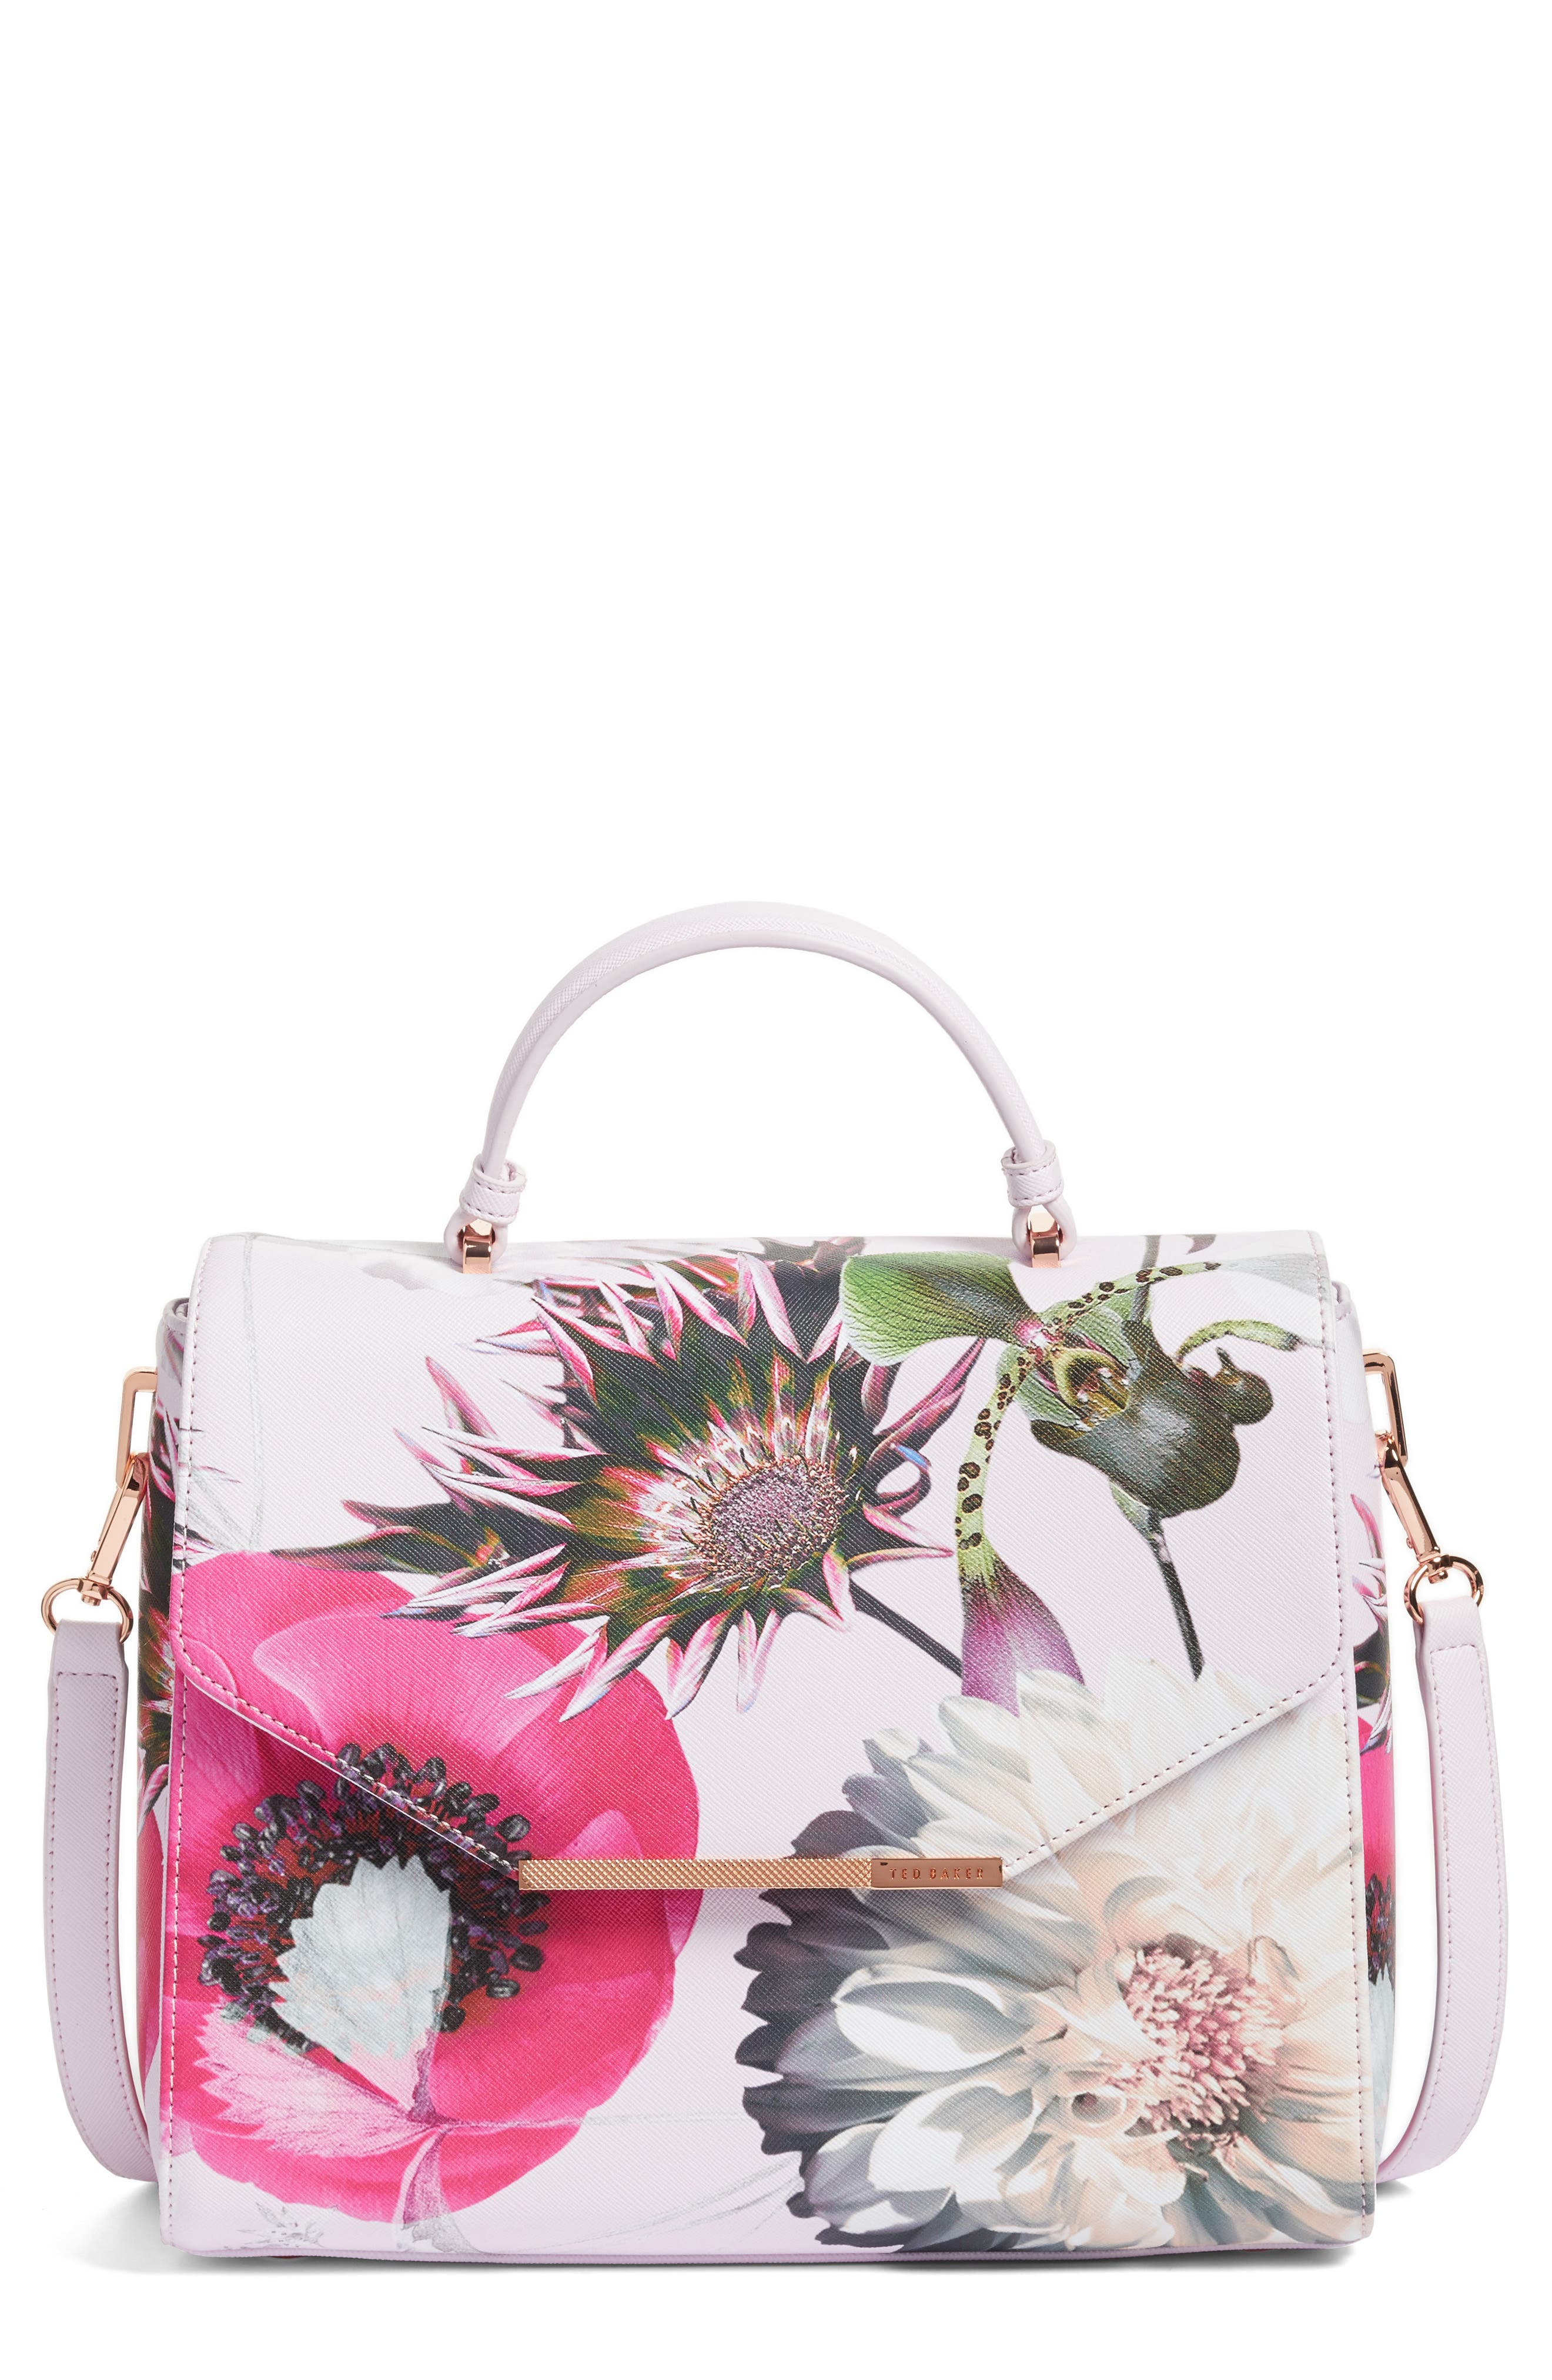 Main Image - Ted Baker London Large Paulet Neon Tote (Nordstrom Exclusive)